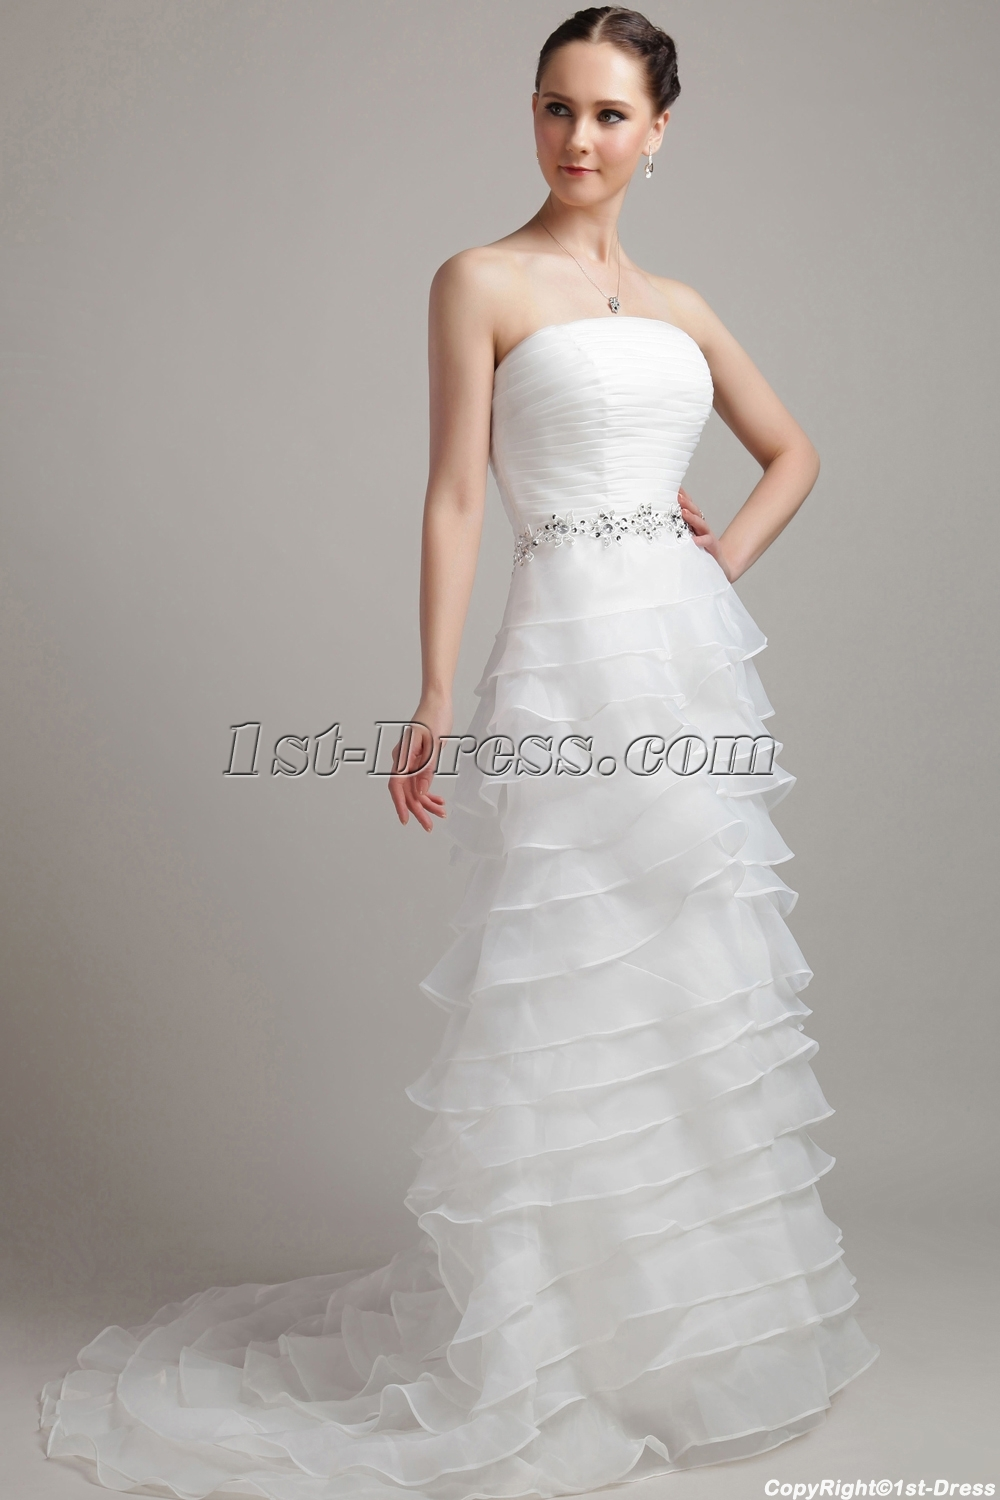 images/201304/big/Strapless-Unique-Bridal-Gowns-2013-IMG_3151-1052-b-1-1366112139.jpg